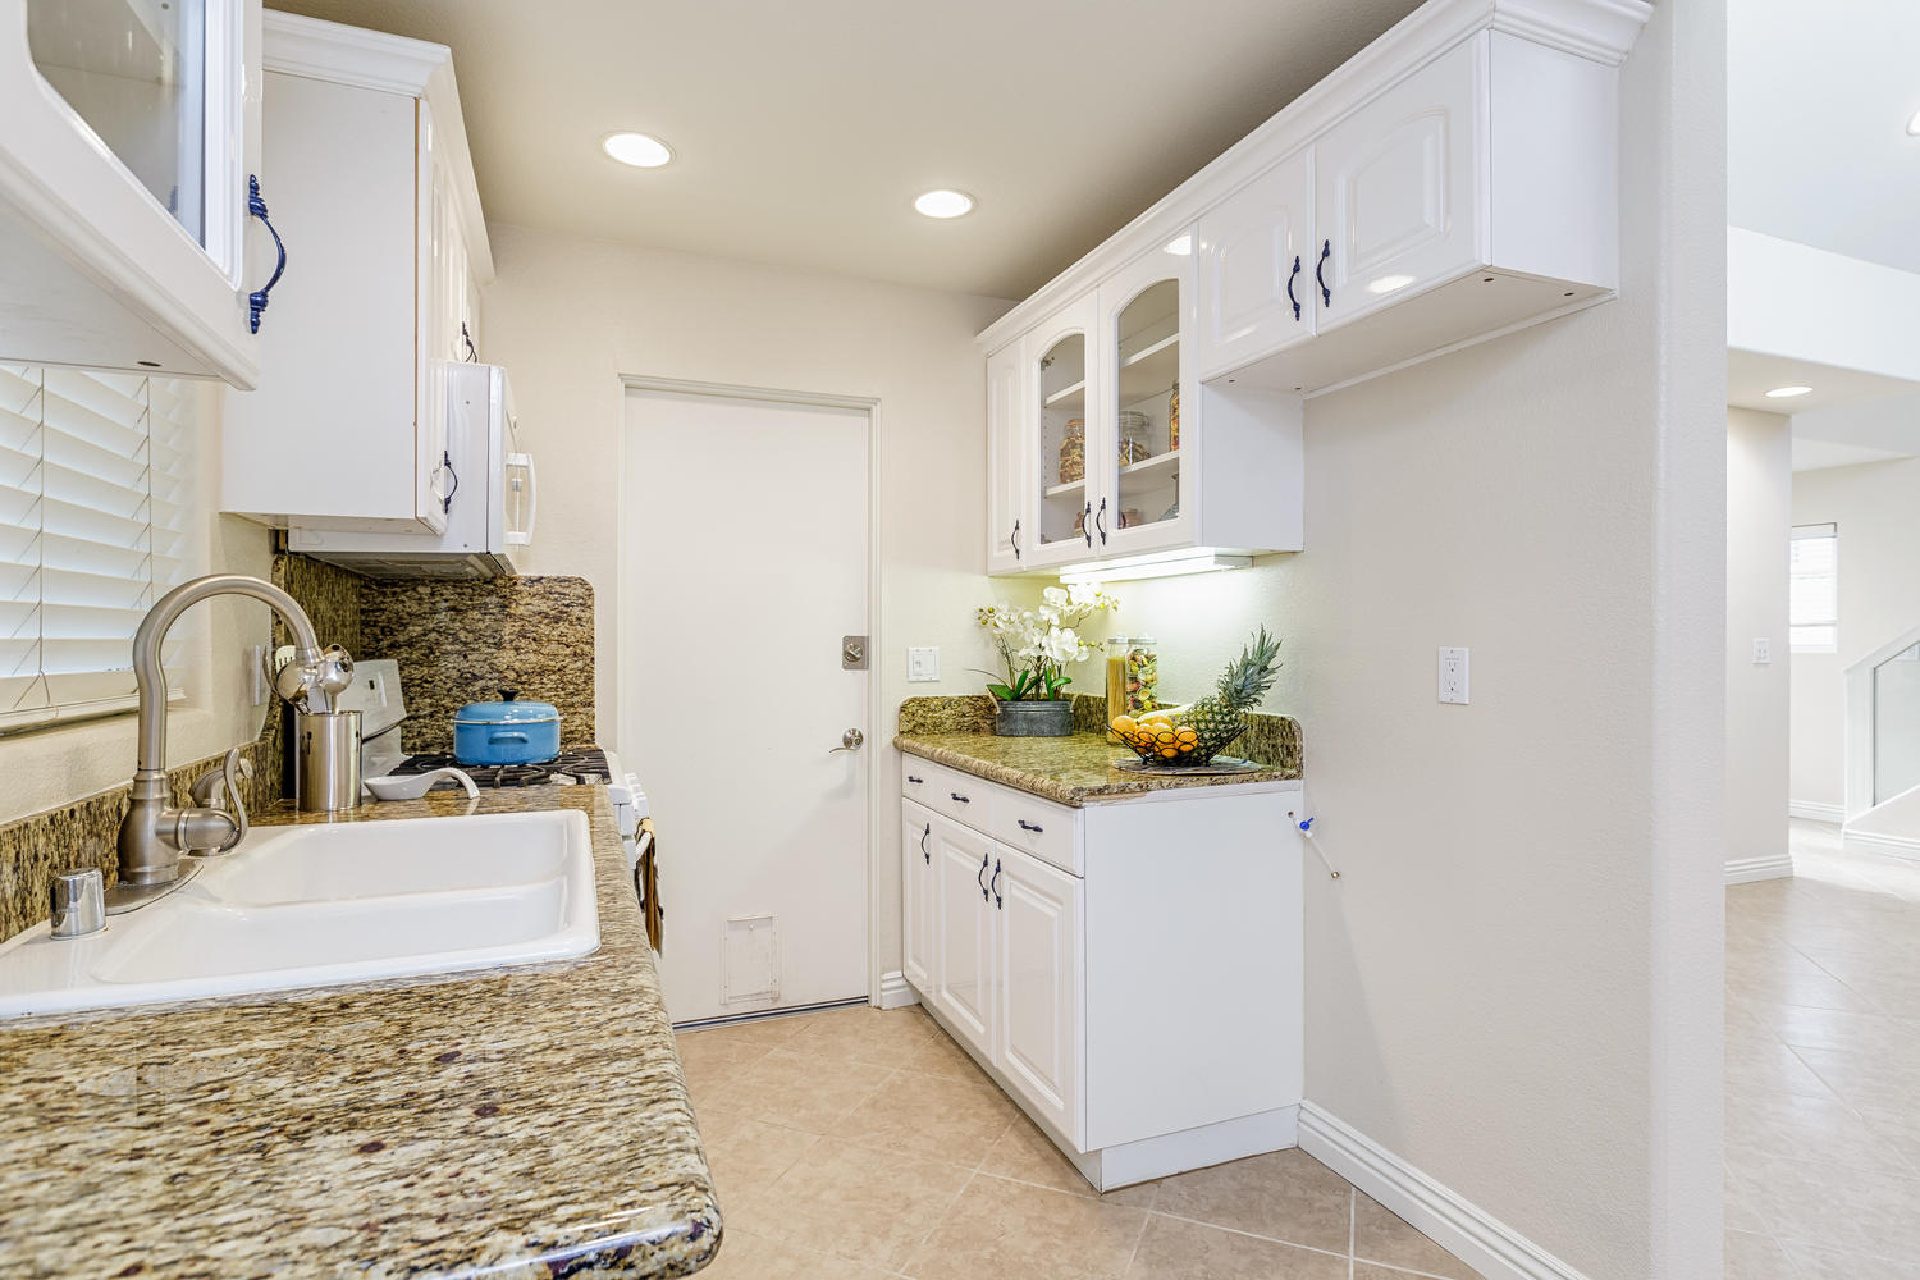 https://www.addressrealestate.com/media/images/blogs/38/2/b_6-1408-ocean-dr-oxnard-ca-93035-mls-size-006-18-kitchen-1500x1000-72dpi.jpg